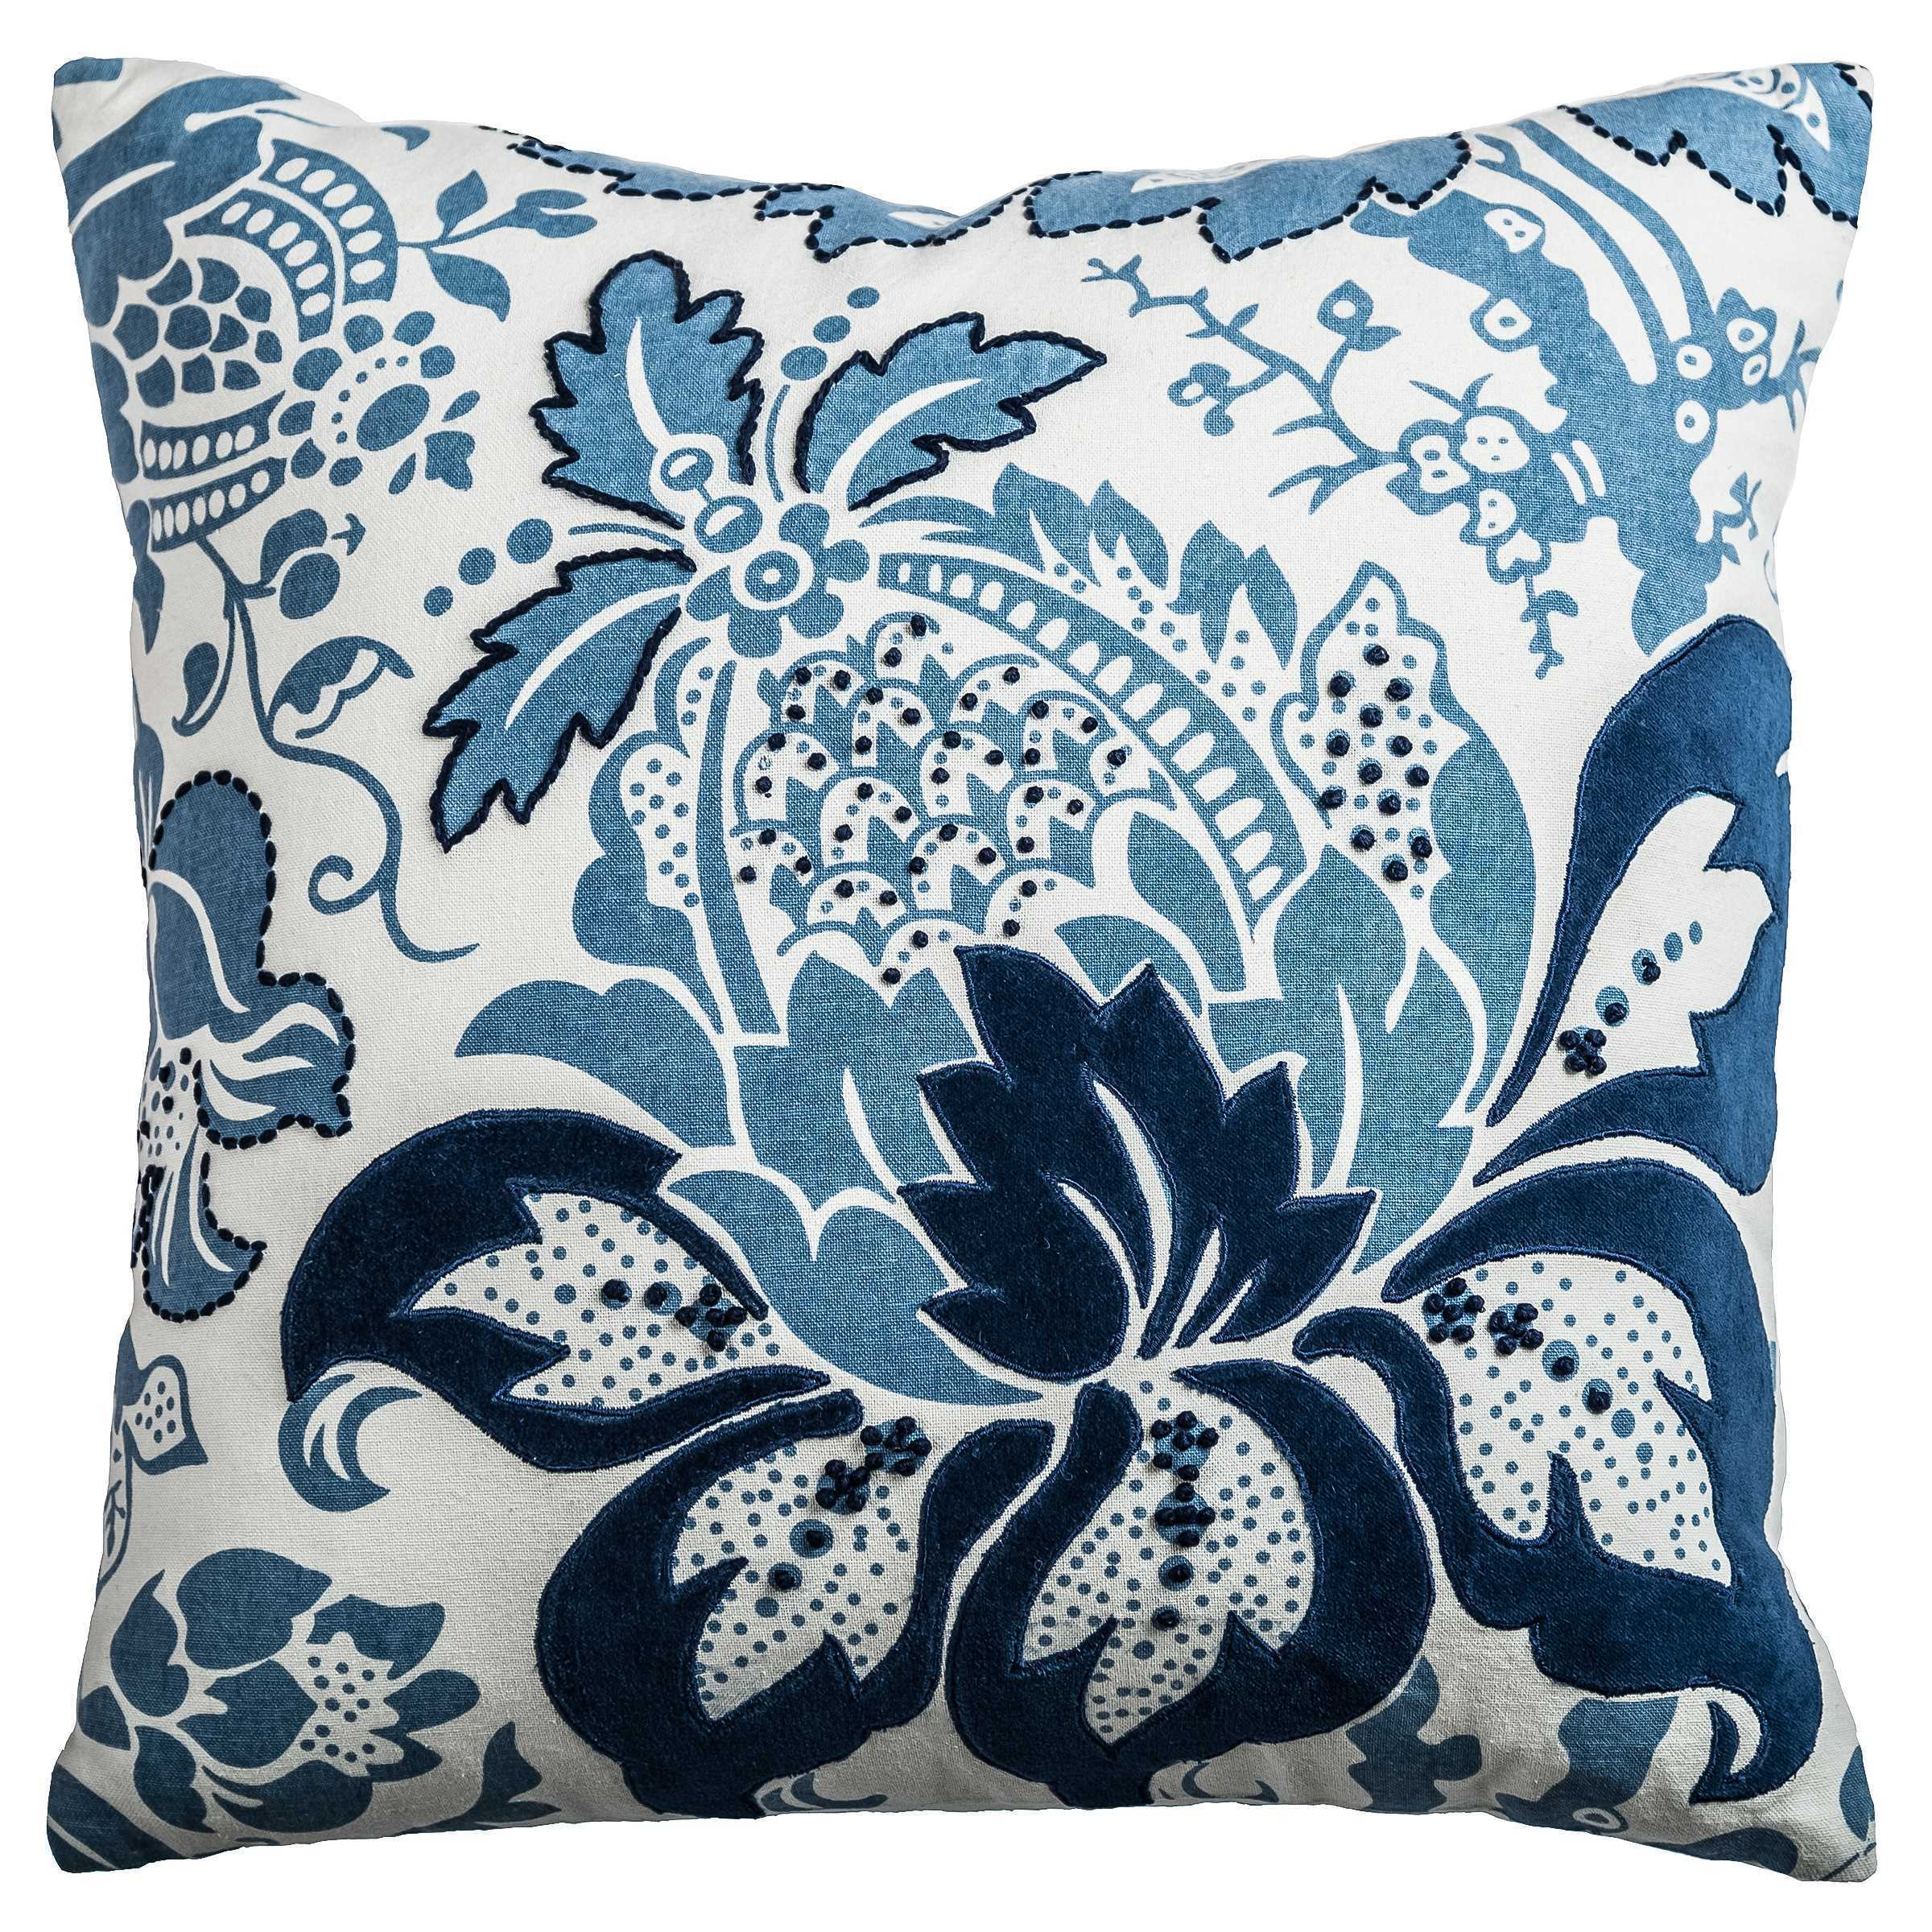 Rizzy Home Blue White Cotton Floral Patterned Decorative Throw Pillow On Sale Overstock 14309720